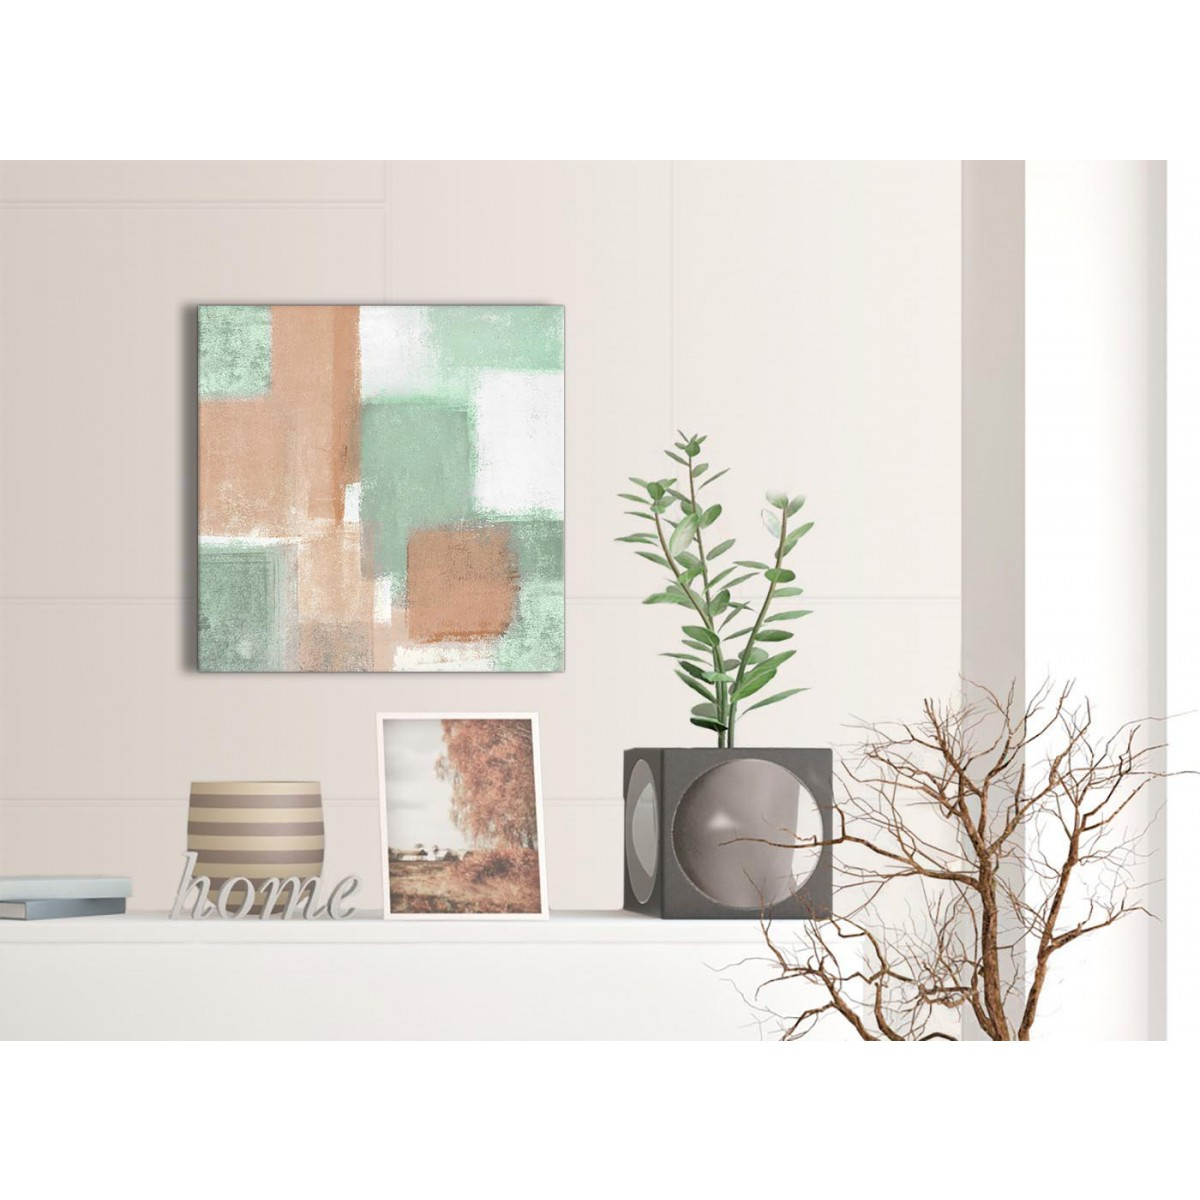 peach mint green bathroom canvas wall art accessories abstract 1s375s 49cm square print. Black Bedroom Furniture Sets. Home Design Ideas